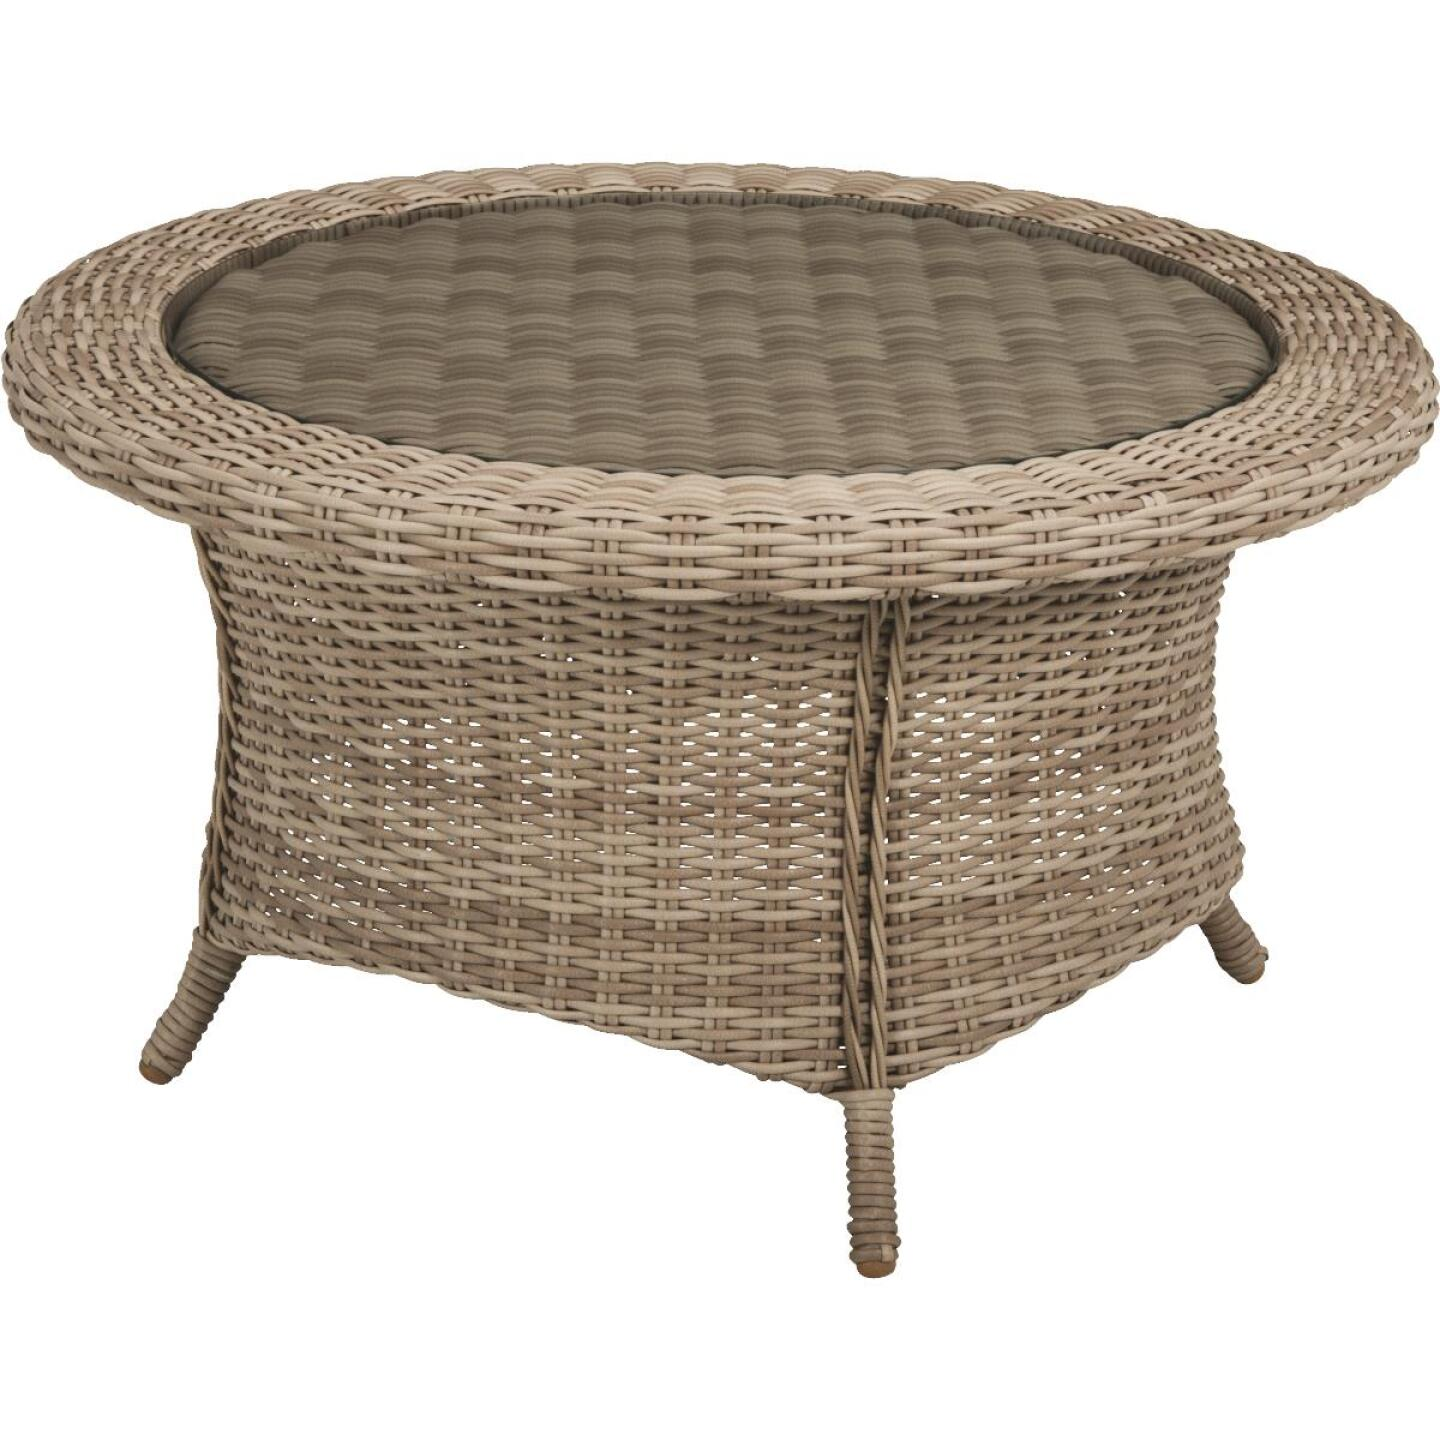 Cambria 37 In. Round Rotating Brown Wicker Table Image 1